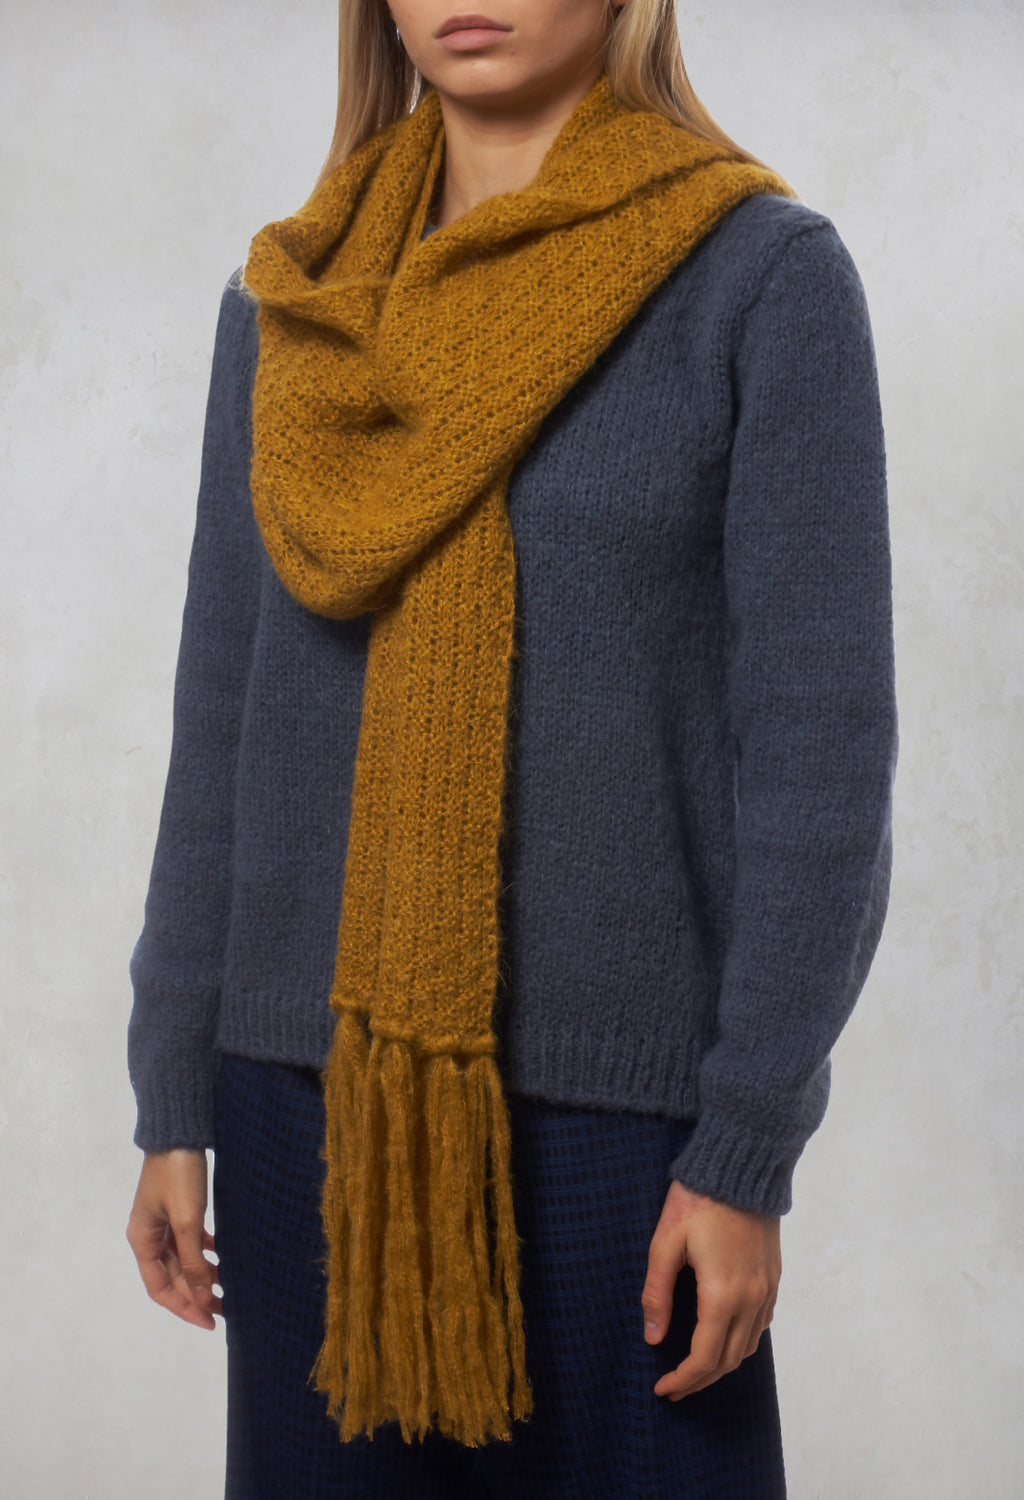 Knitted Scarf in Mustard